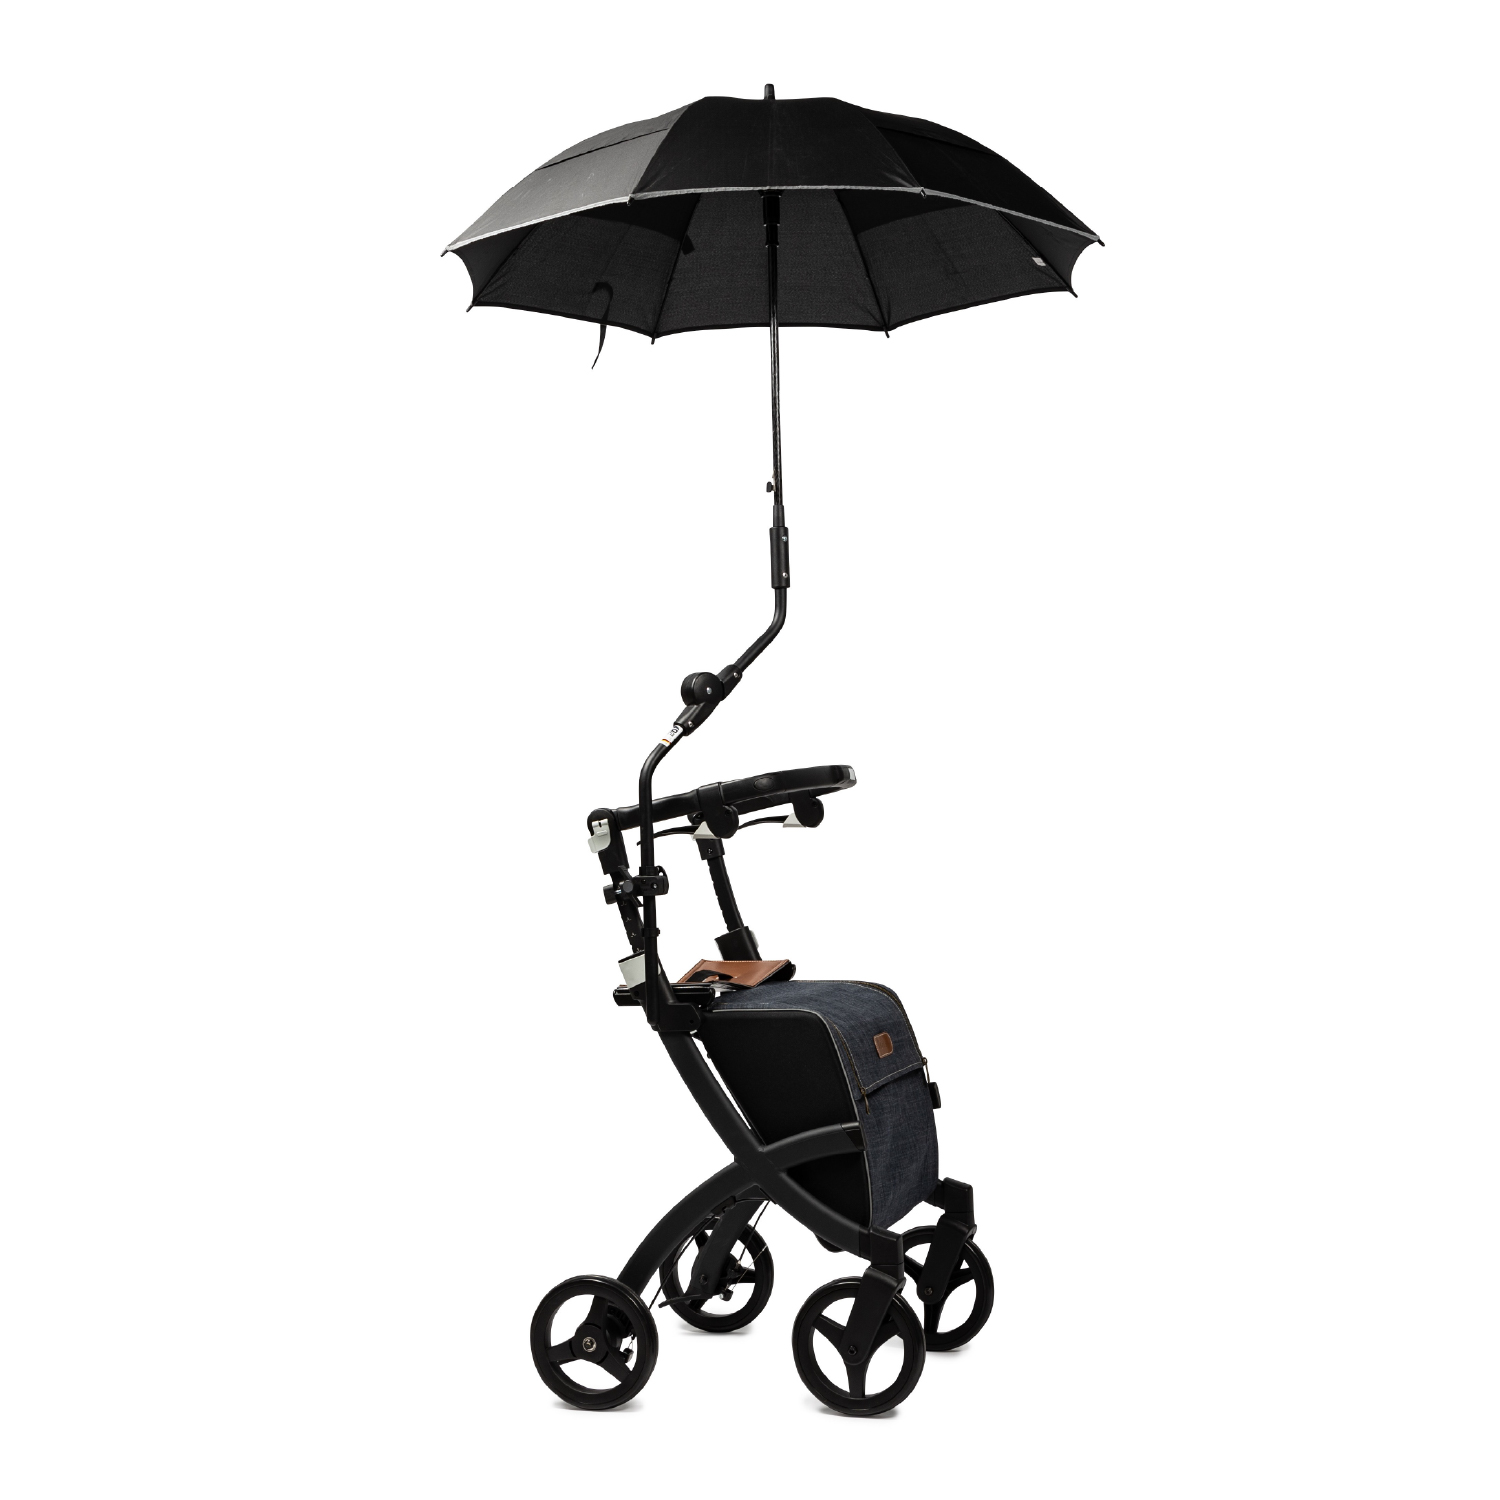 Rollz Flex umbrella paraplu